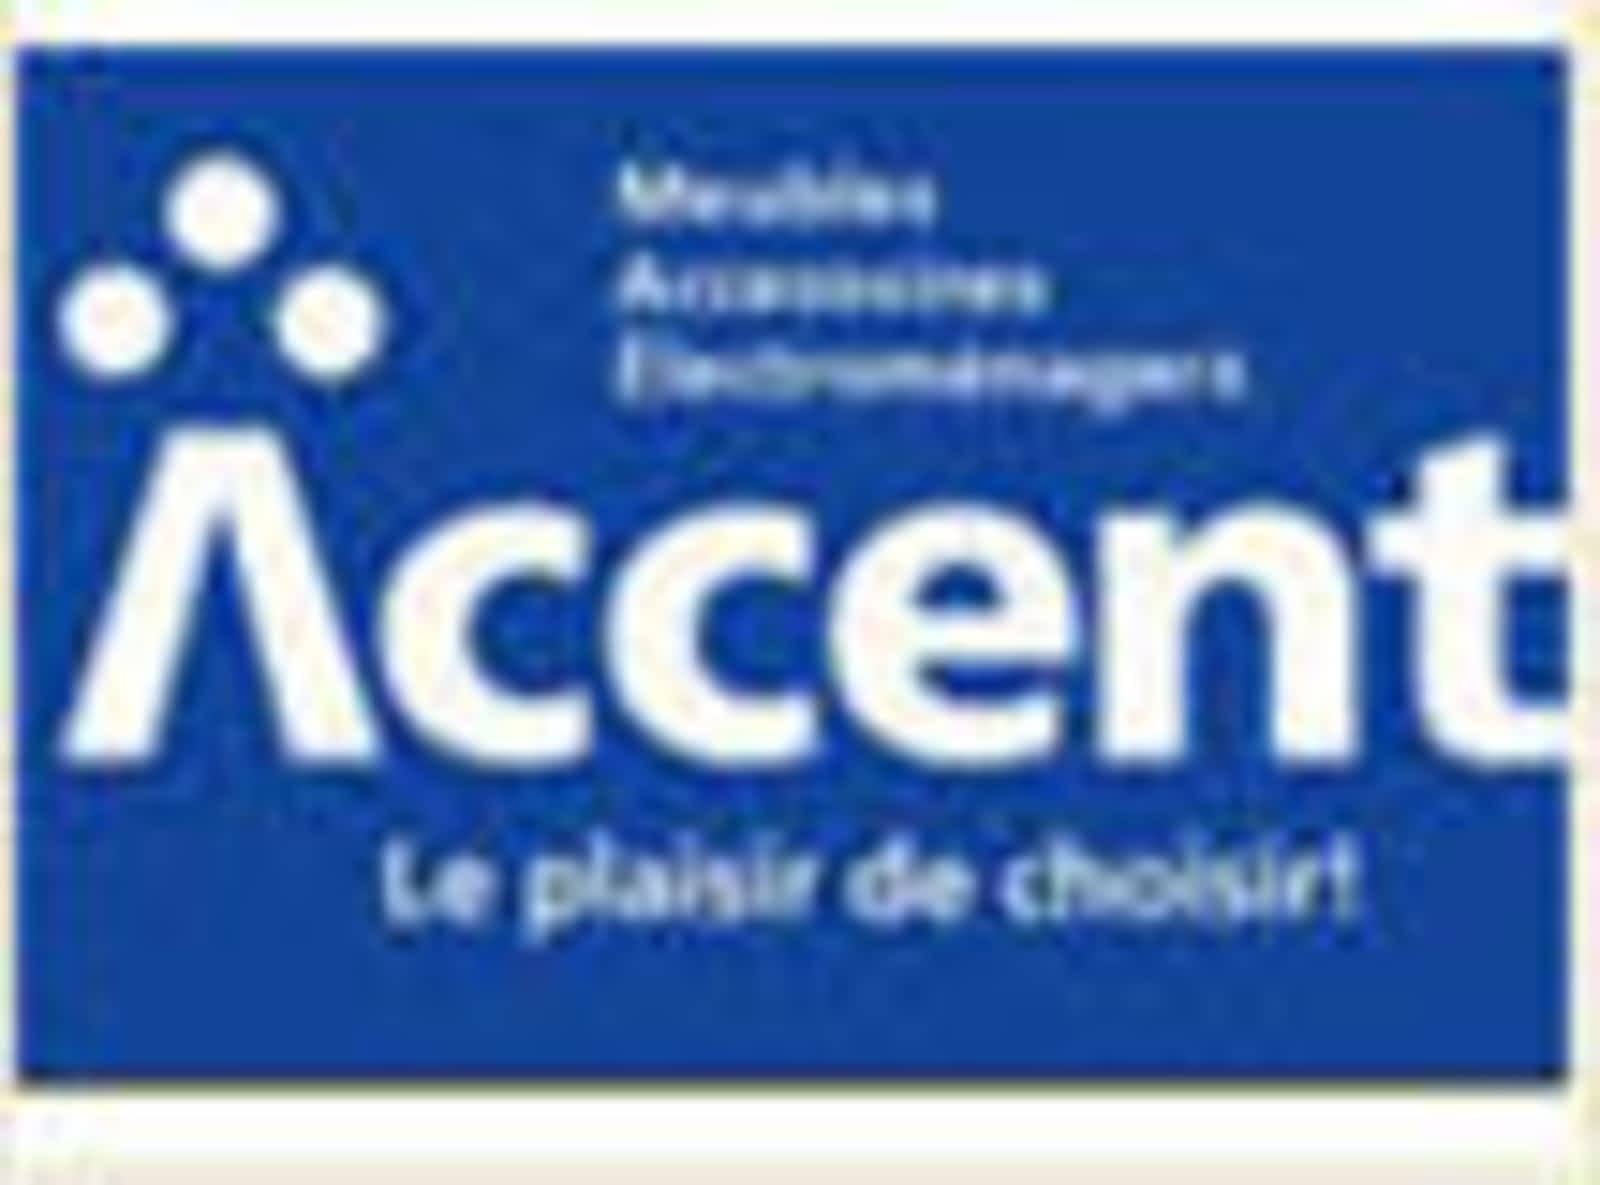 Meubles Accent Furniture Rockland Accent Meubles Decocentre Levasseur Opening Hours 50 Av Mgr